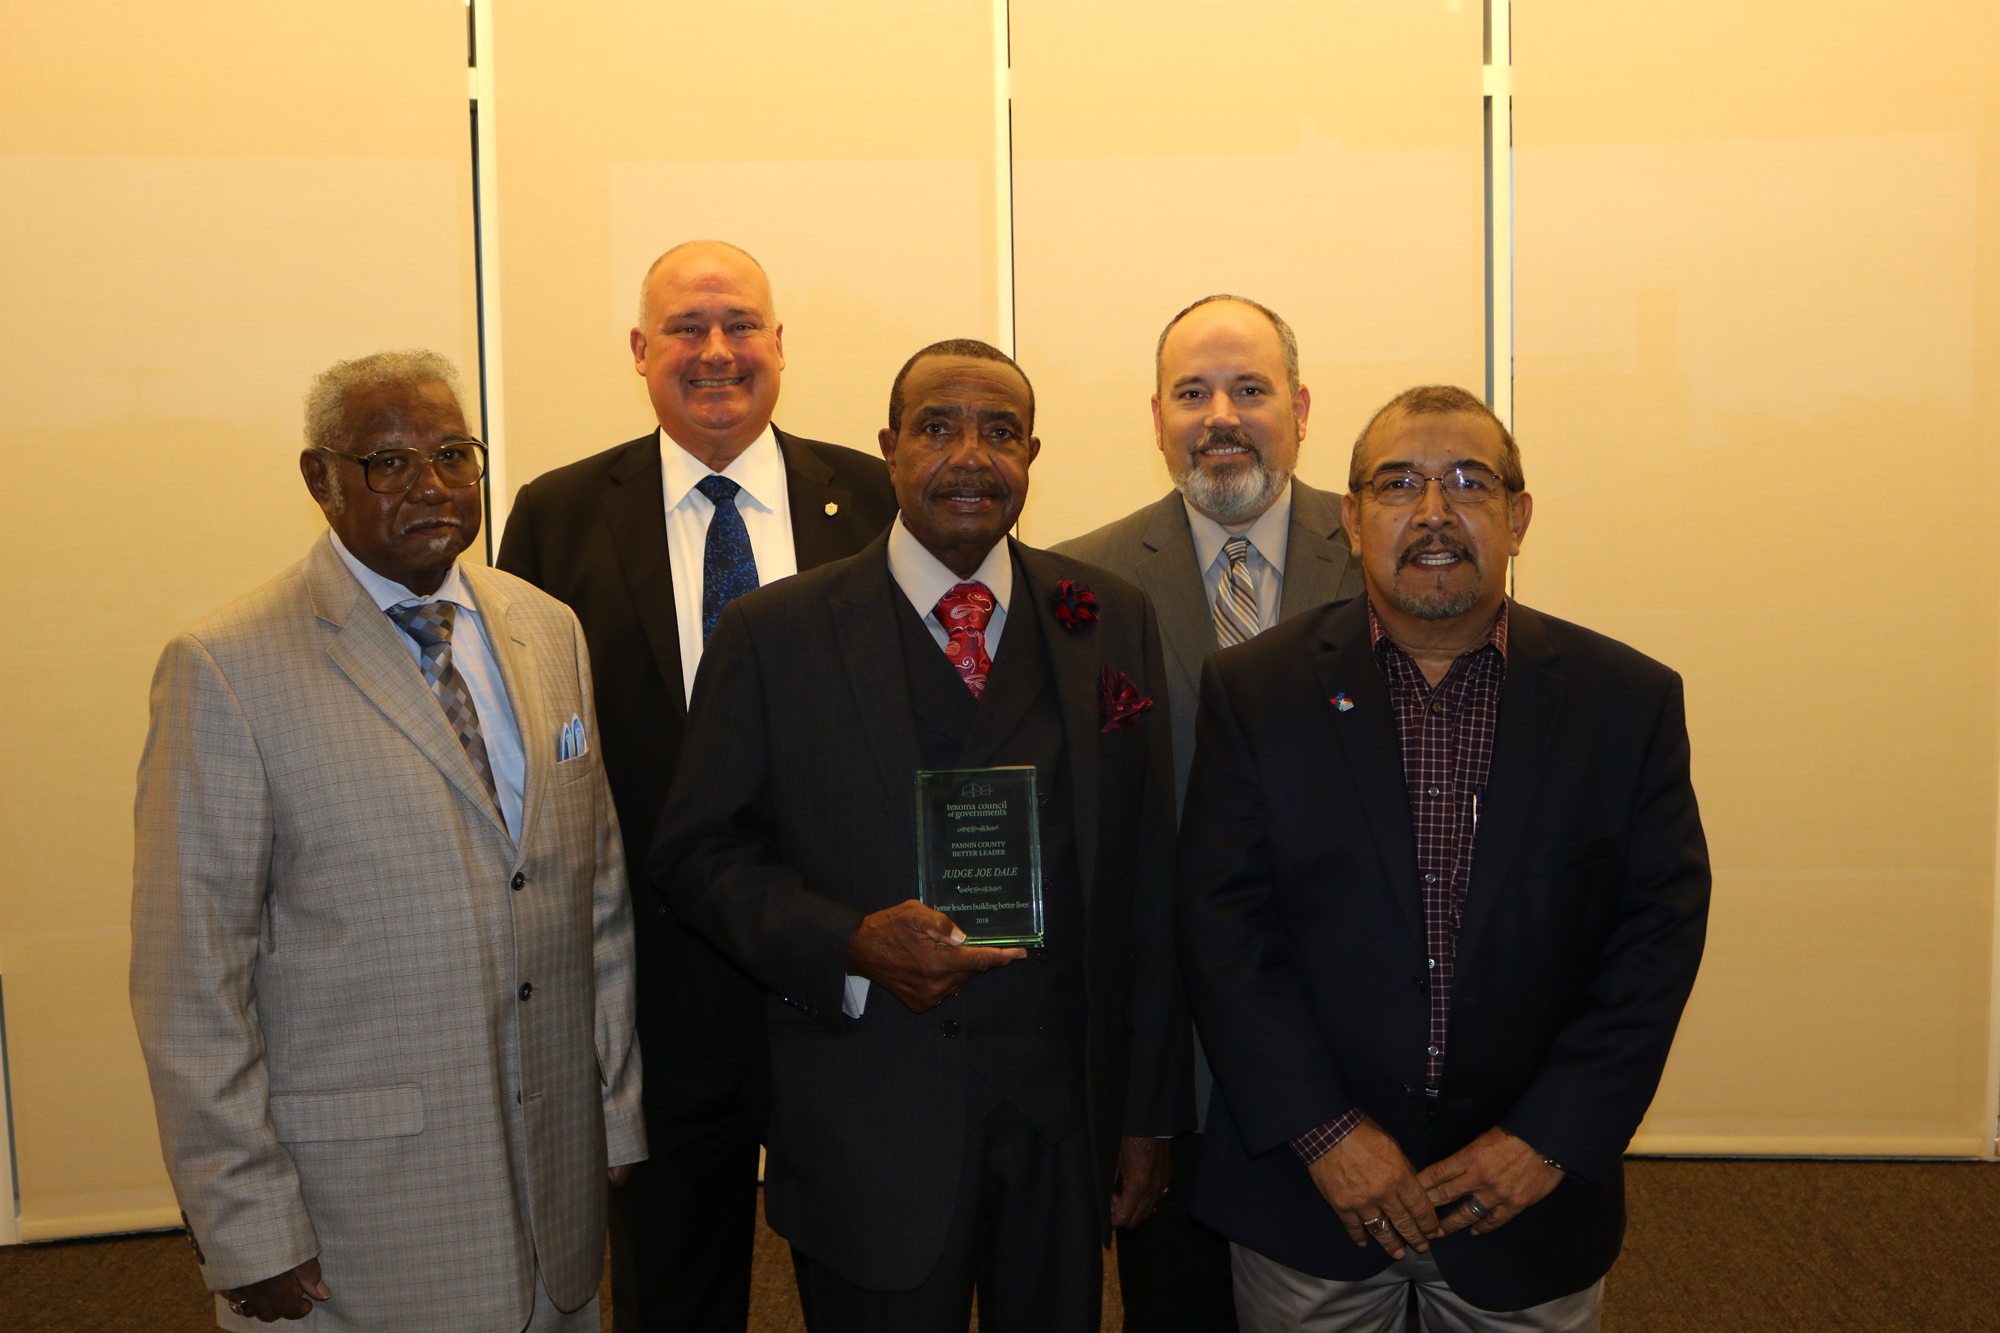 Reverend Cecil Jones, Fannin County Community Representative; Judge Spanky Carter, Fannin County; Judge Joe C. Dale, Fannin County Better Leader Award Recipient 2018; Jason Fox, Bonham ISD Trustee; Councilman Tony Rodriguez, City of Bonham